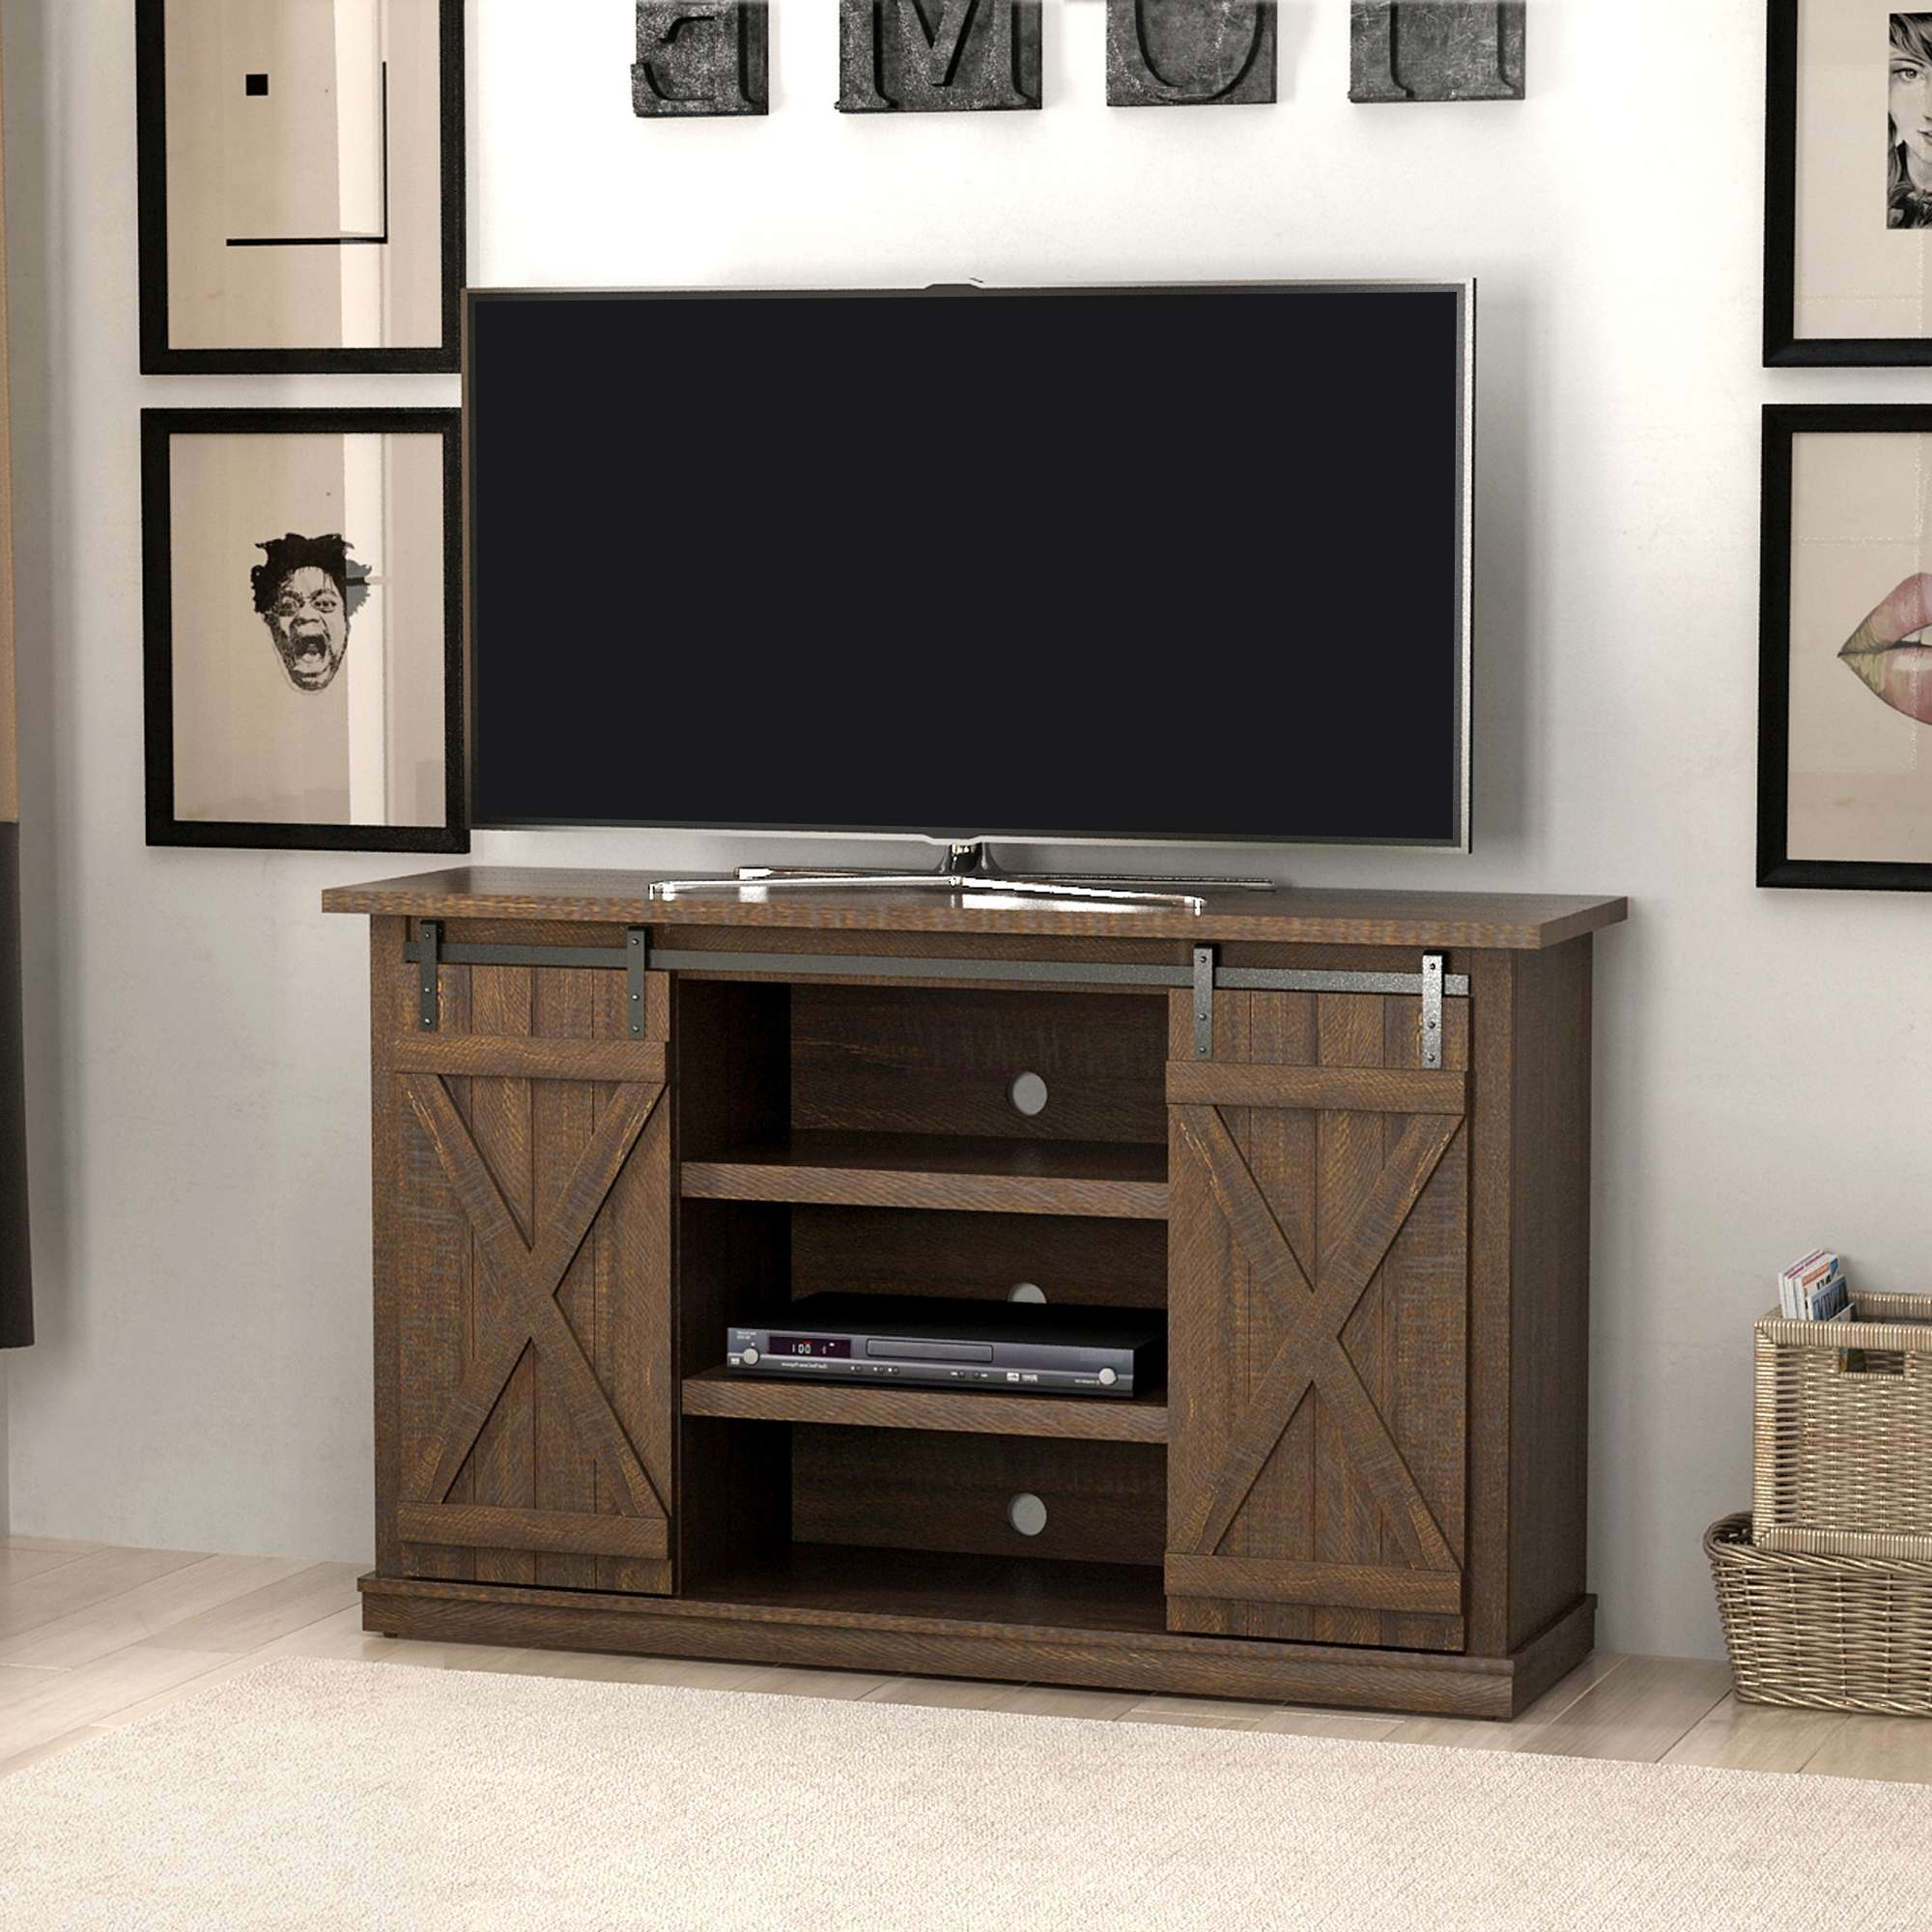 Tv Stands – Walmart Pertaining To Cheap Tall Tv Stands For Flat Screens (View 16 of 20)